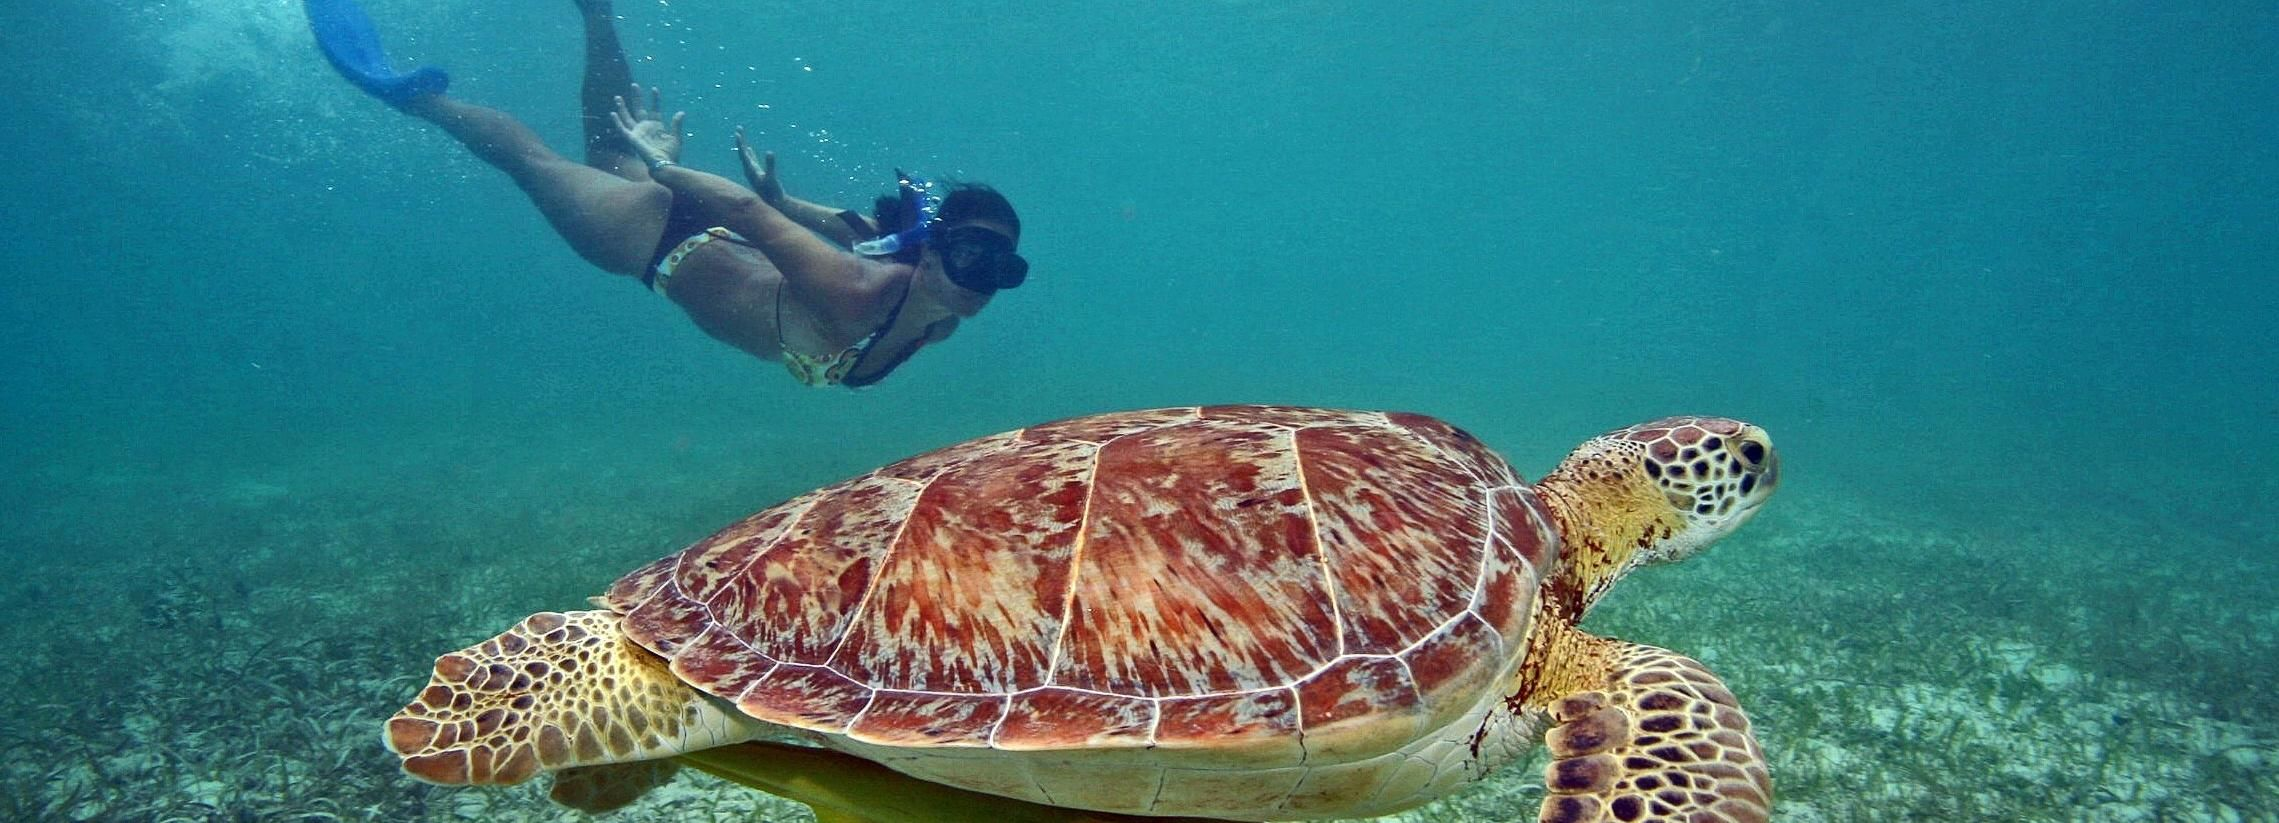 From Bali: Private 3-Day Gili Islands Tour with Snorkeling